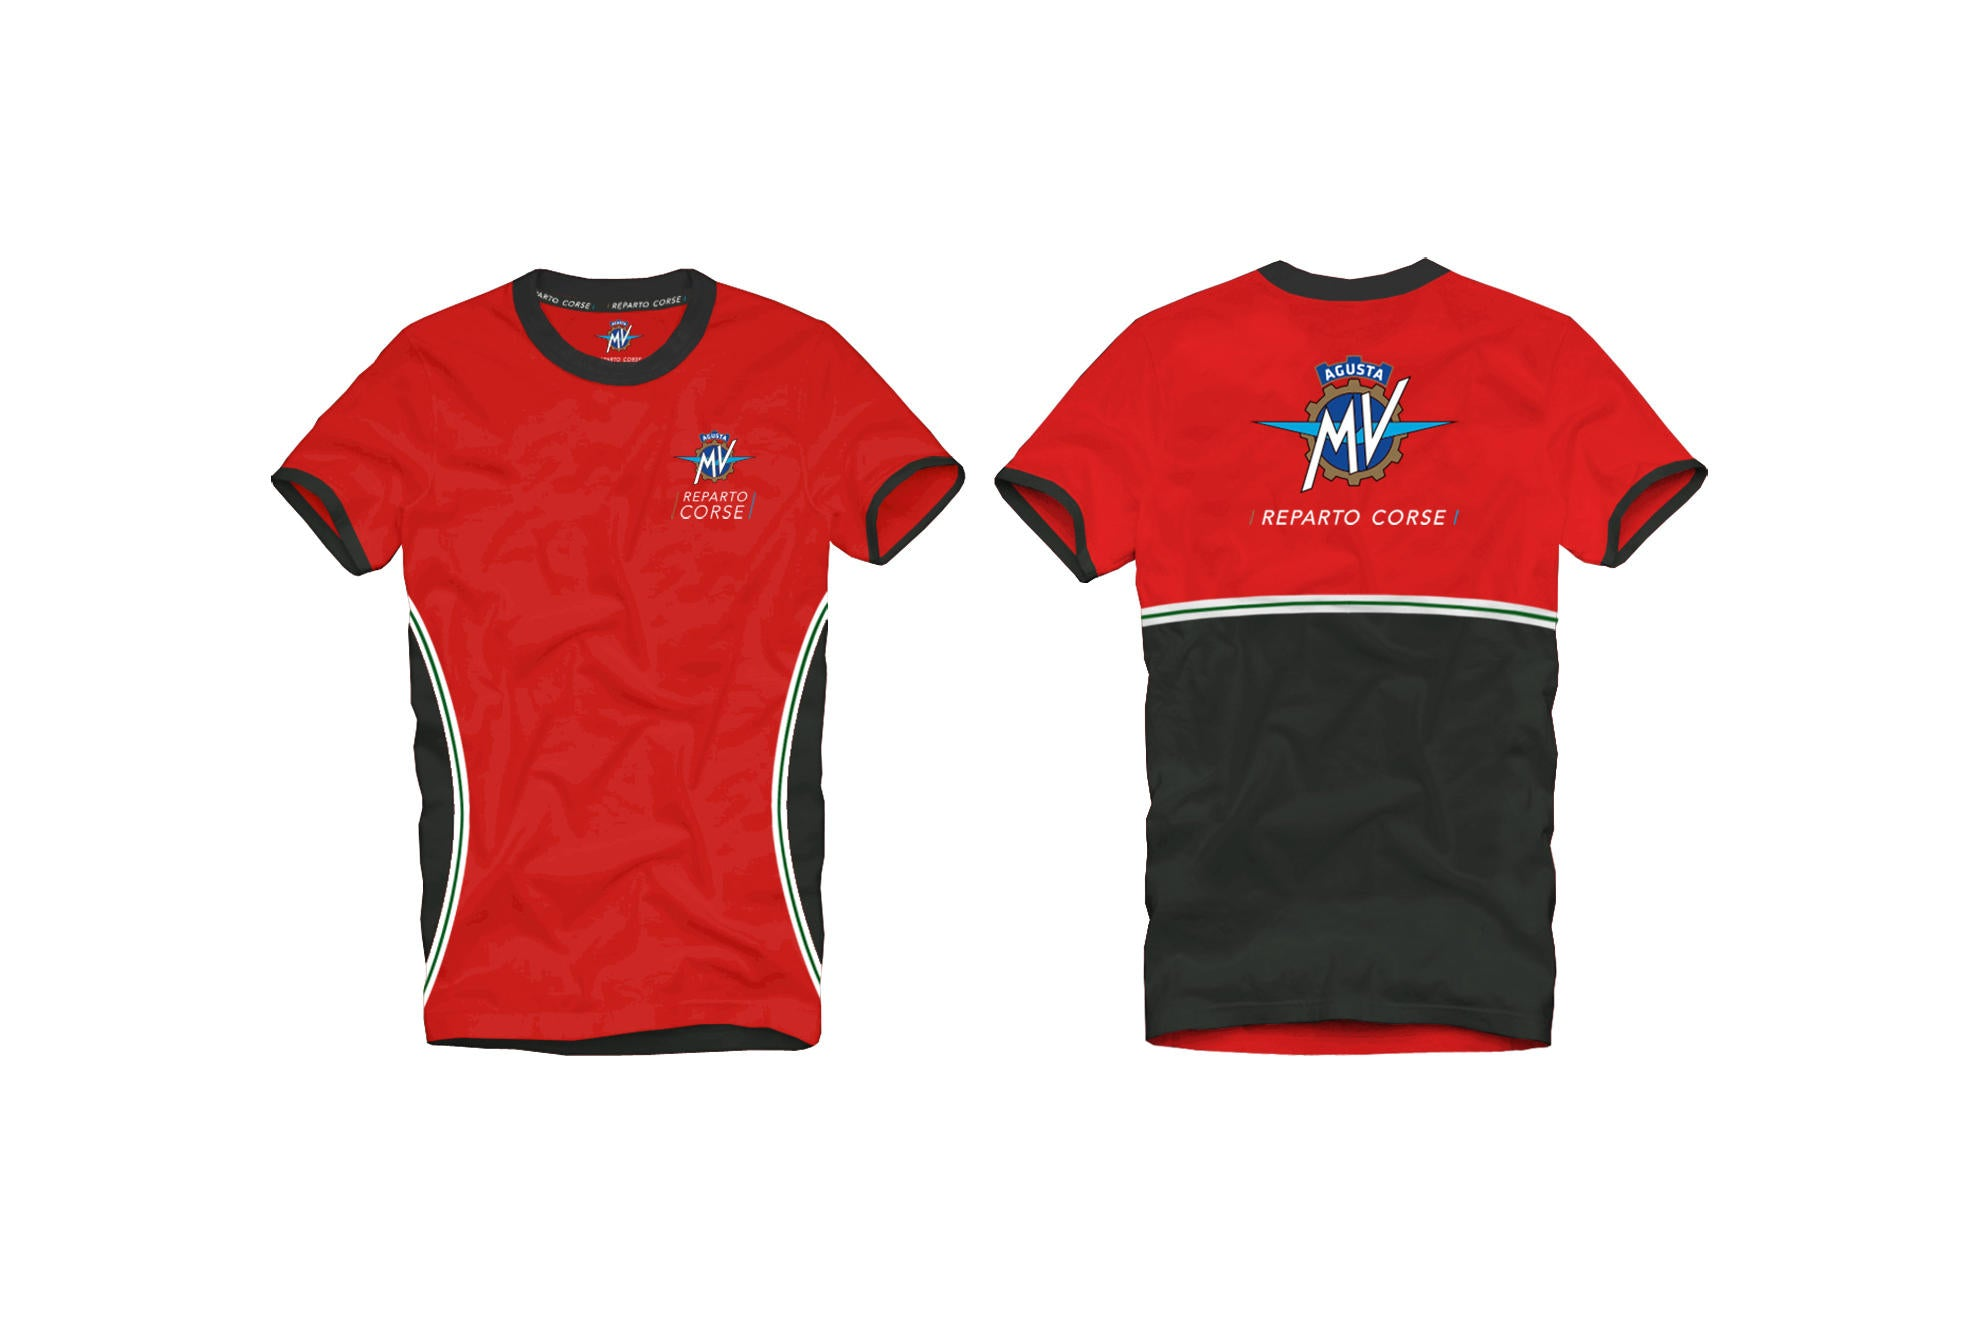 MV Agusta Reparto Corse T-shirt, MV Agusta Clothing, CNC Racing - Averys Motorcycles